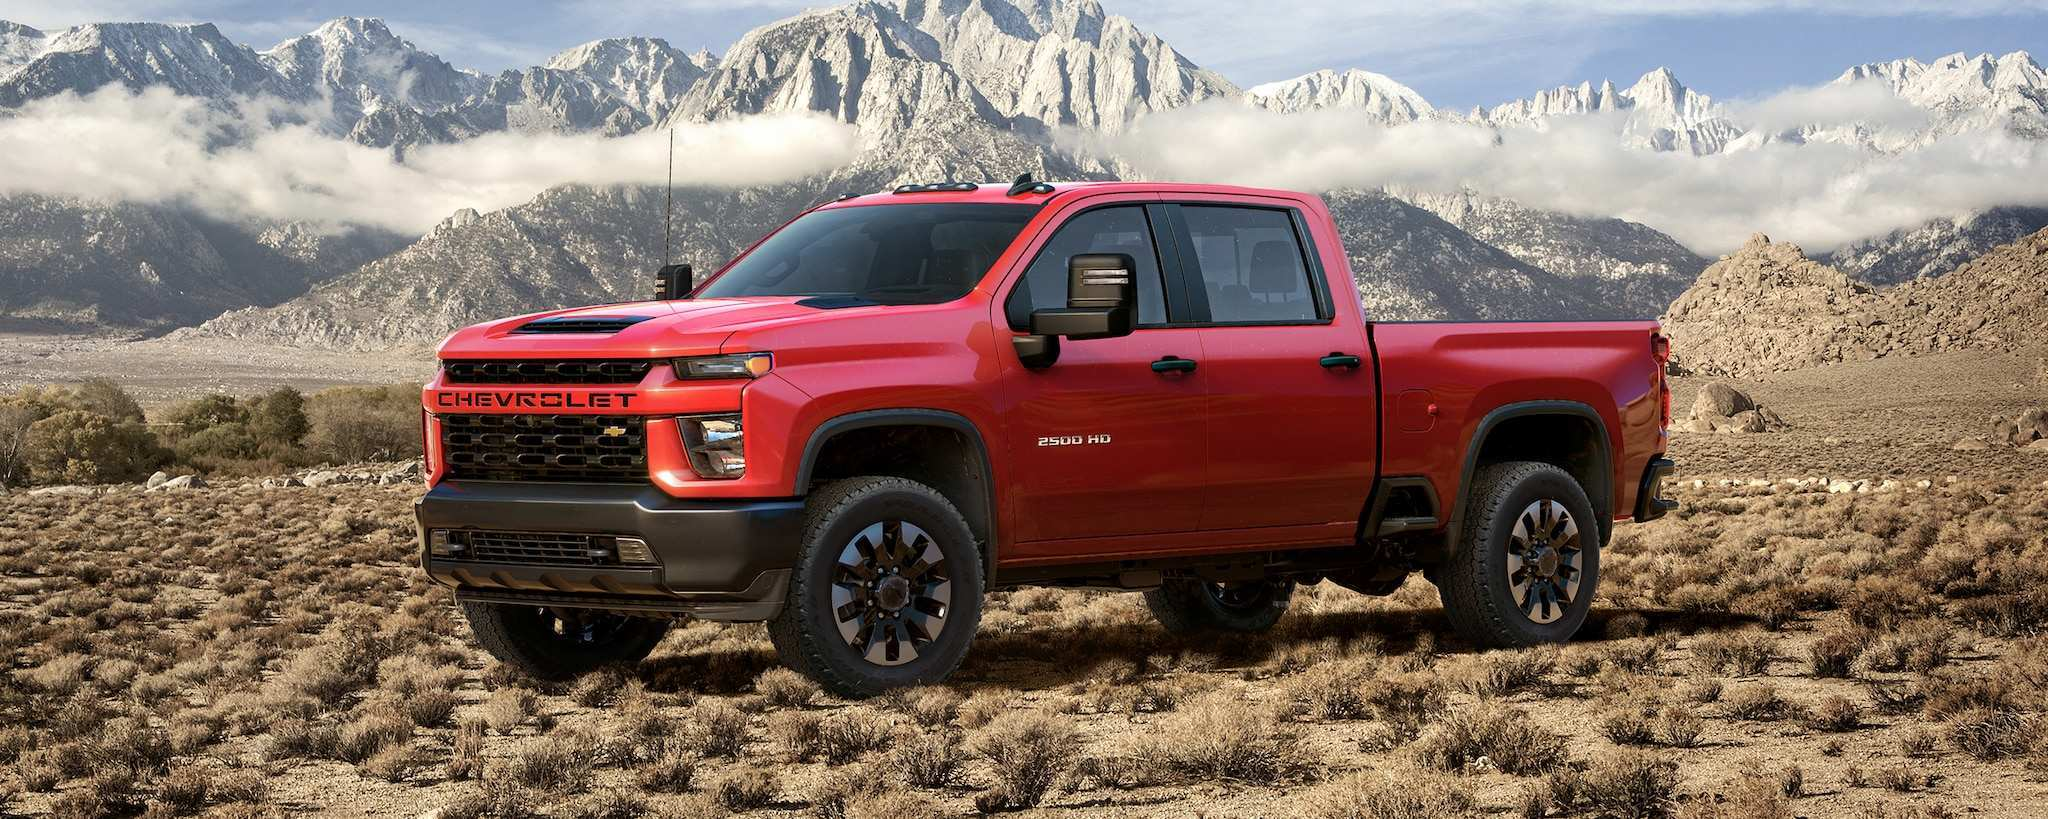 21 The Best 2020 Chevrolet Silverado Release